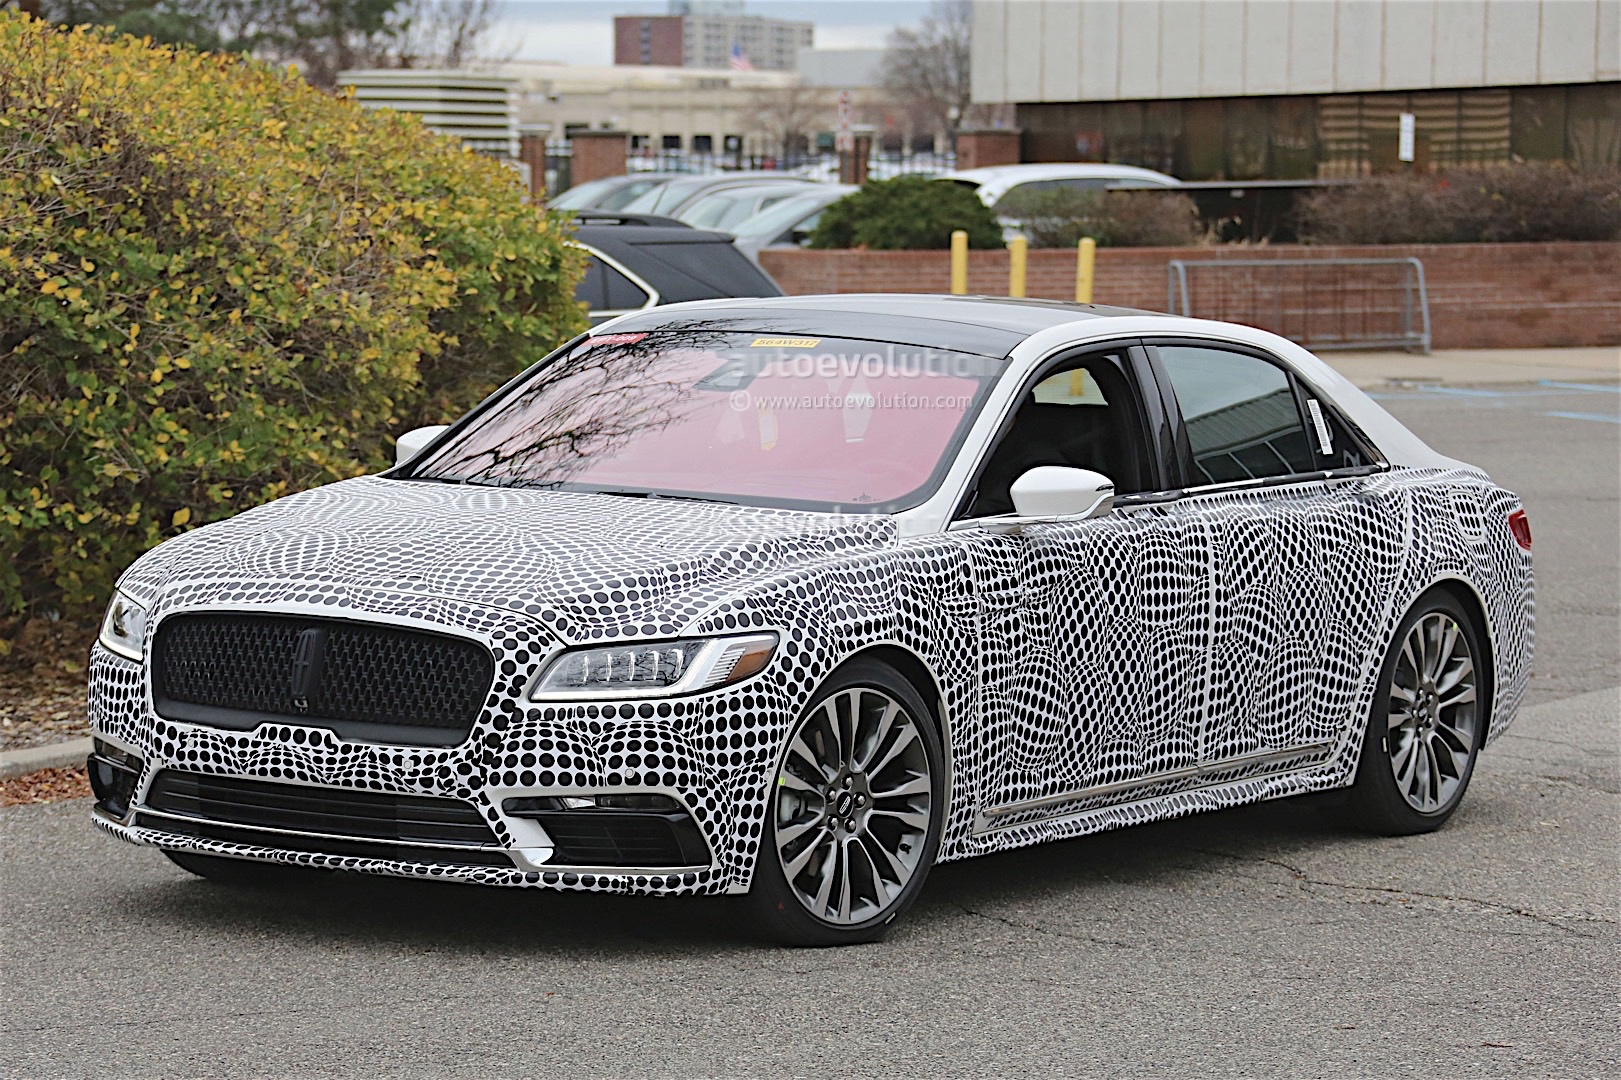 2017 Lincoln Continental Spyshots Reveal More Details